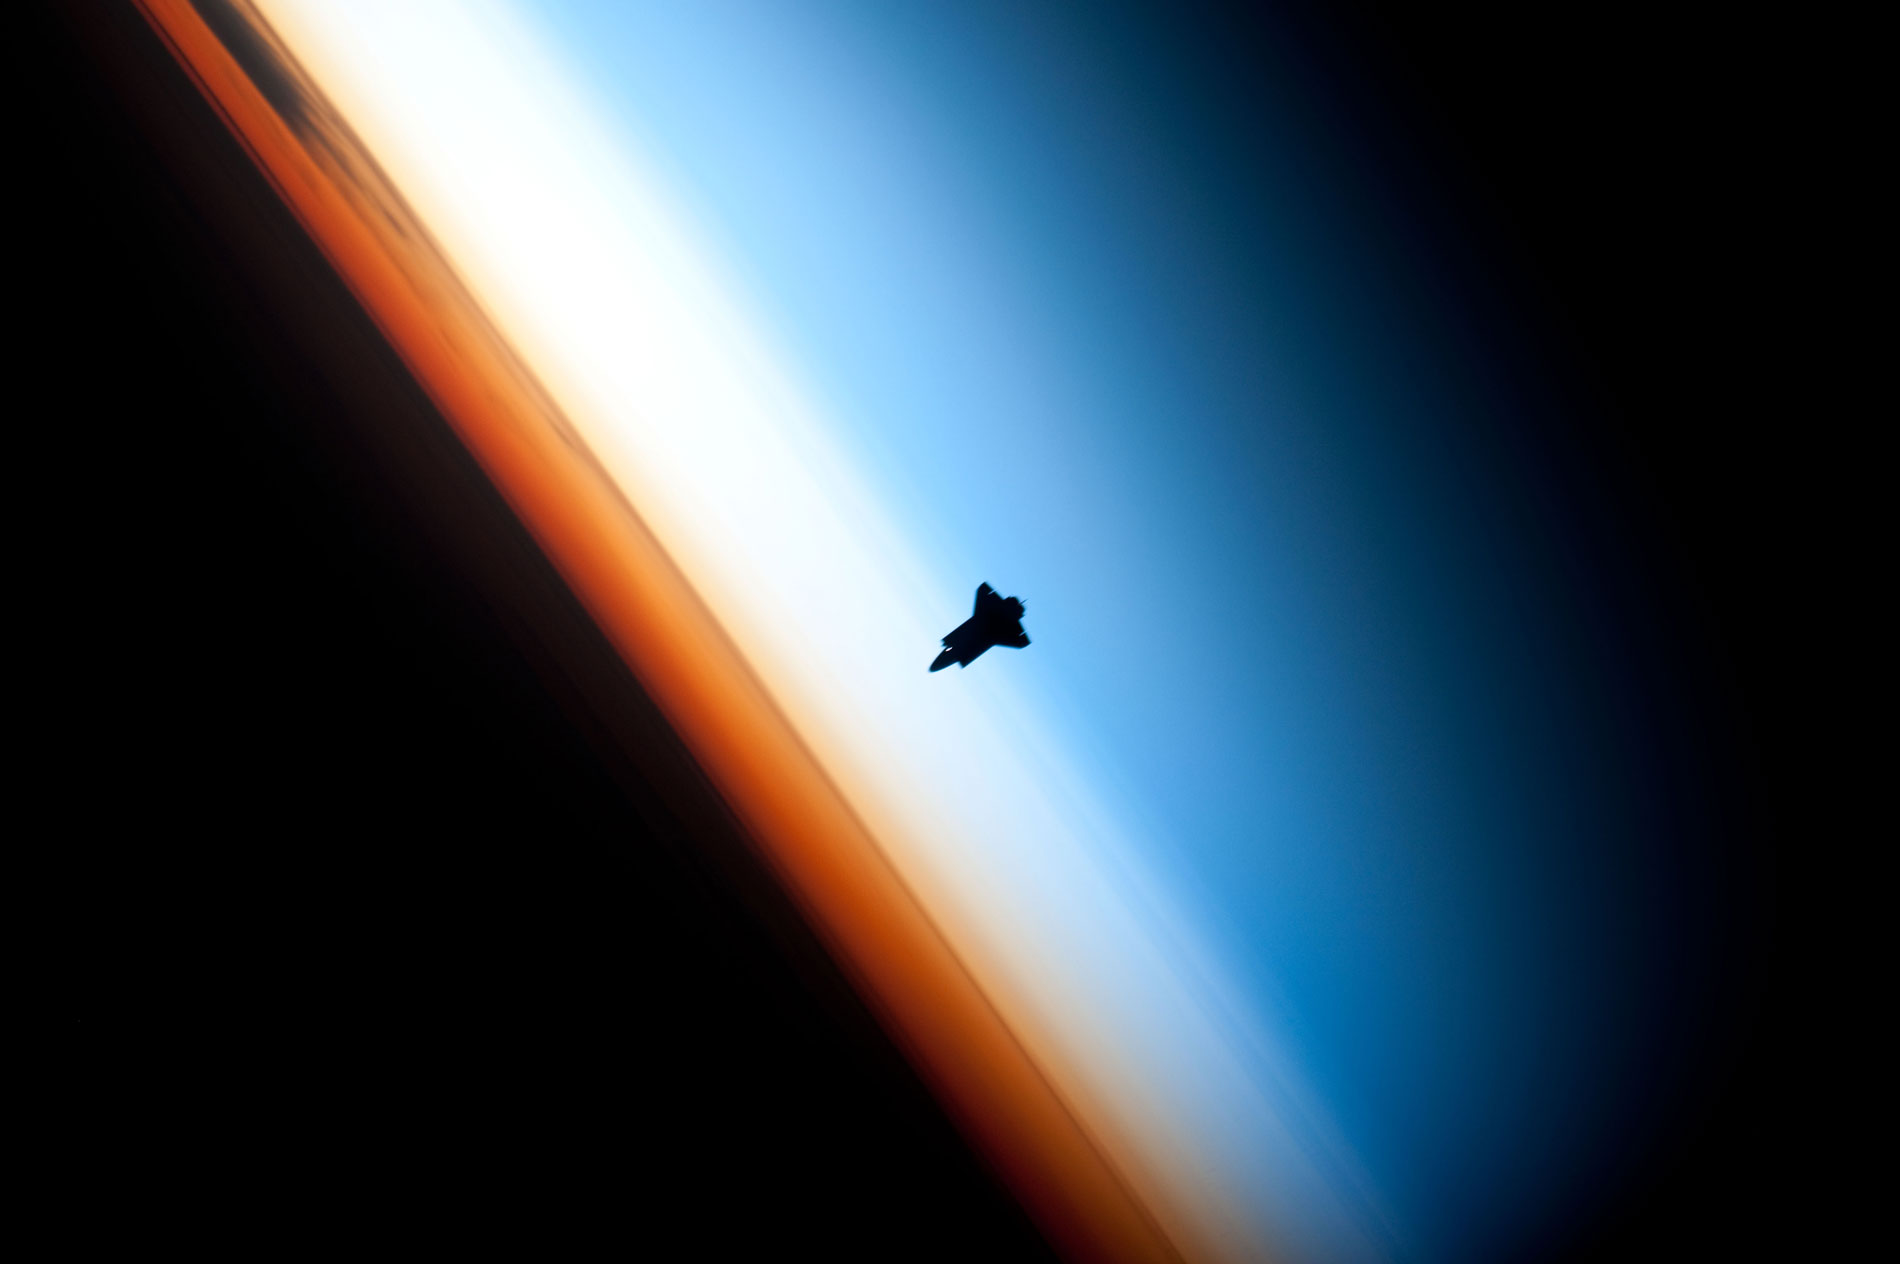 Image of Space Shuttle over a darkened Earth with three colorful layers of atmosphere visible.